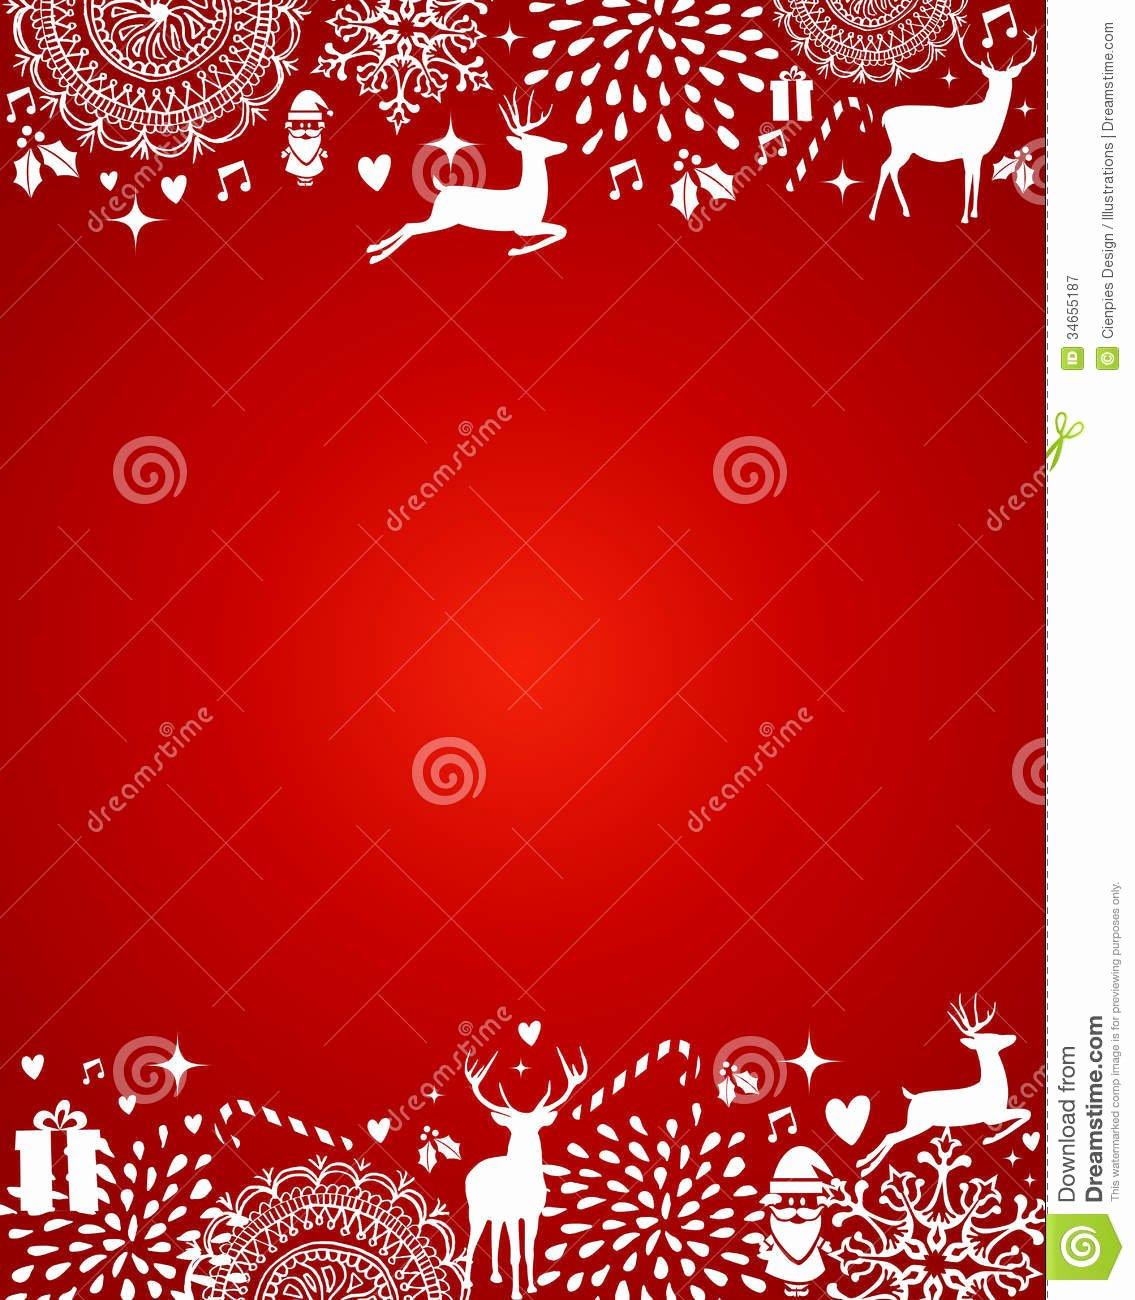 10 Christmas Templates Free Download Free